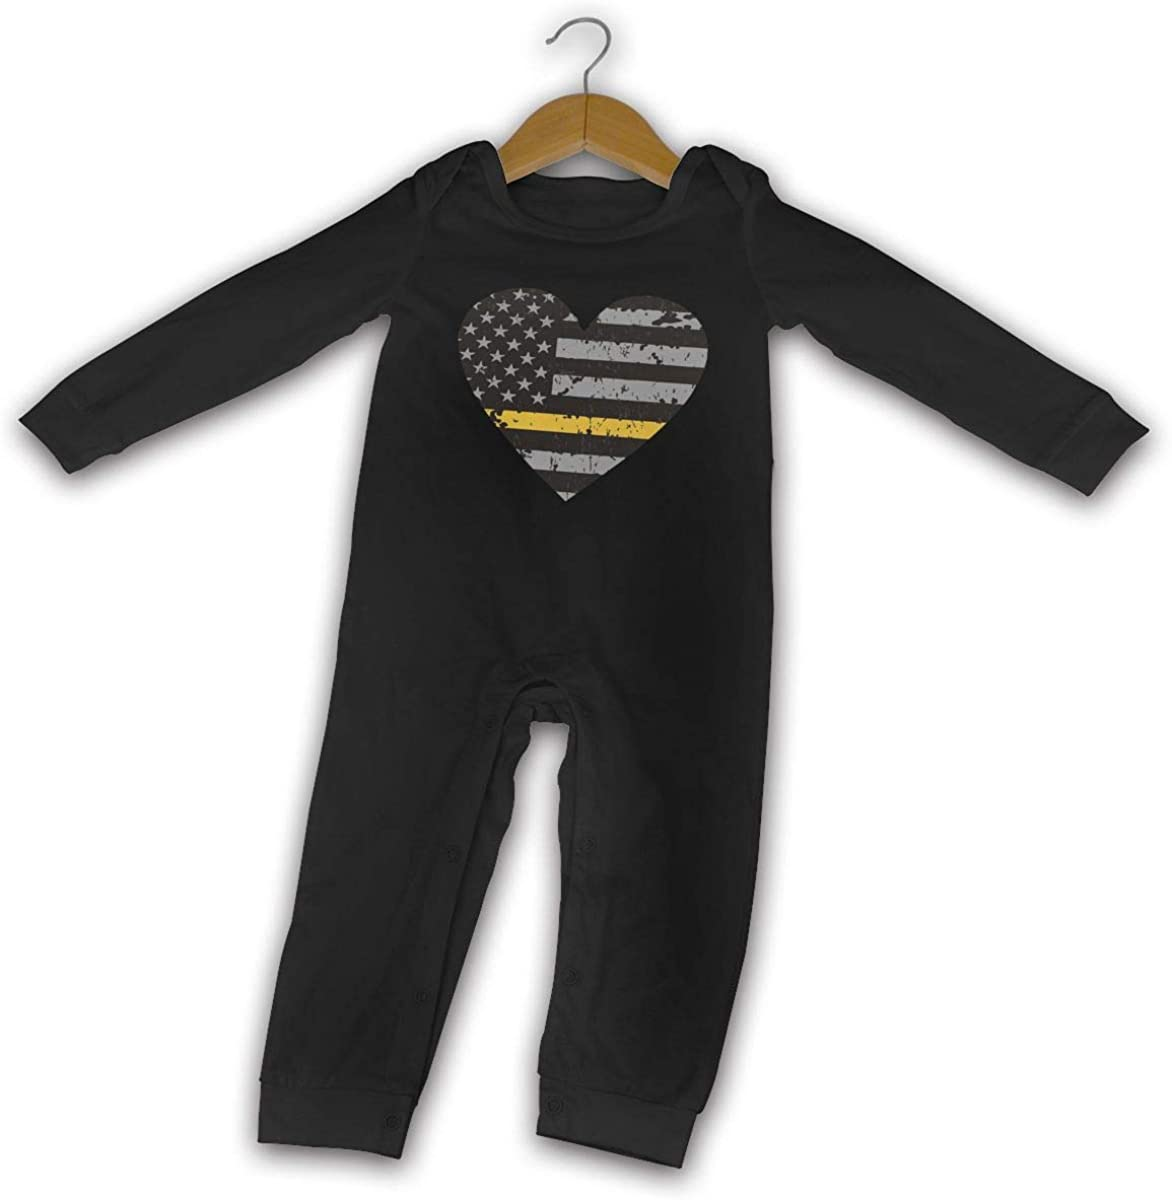 YELTY6F Thin Gold Line Dispatcher Distressed Flag Heart Printed Newborn Baby Boy Girl Jumpsuit Long Sleeve Outfits Black